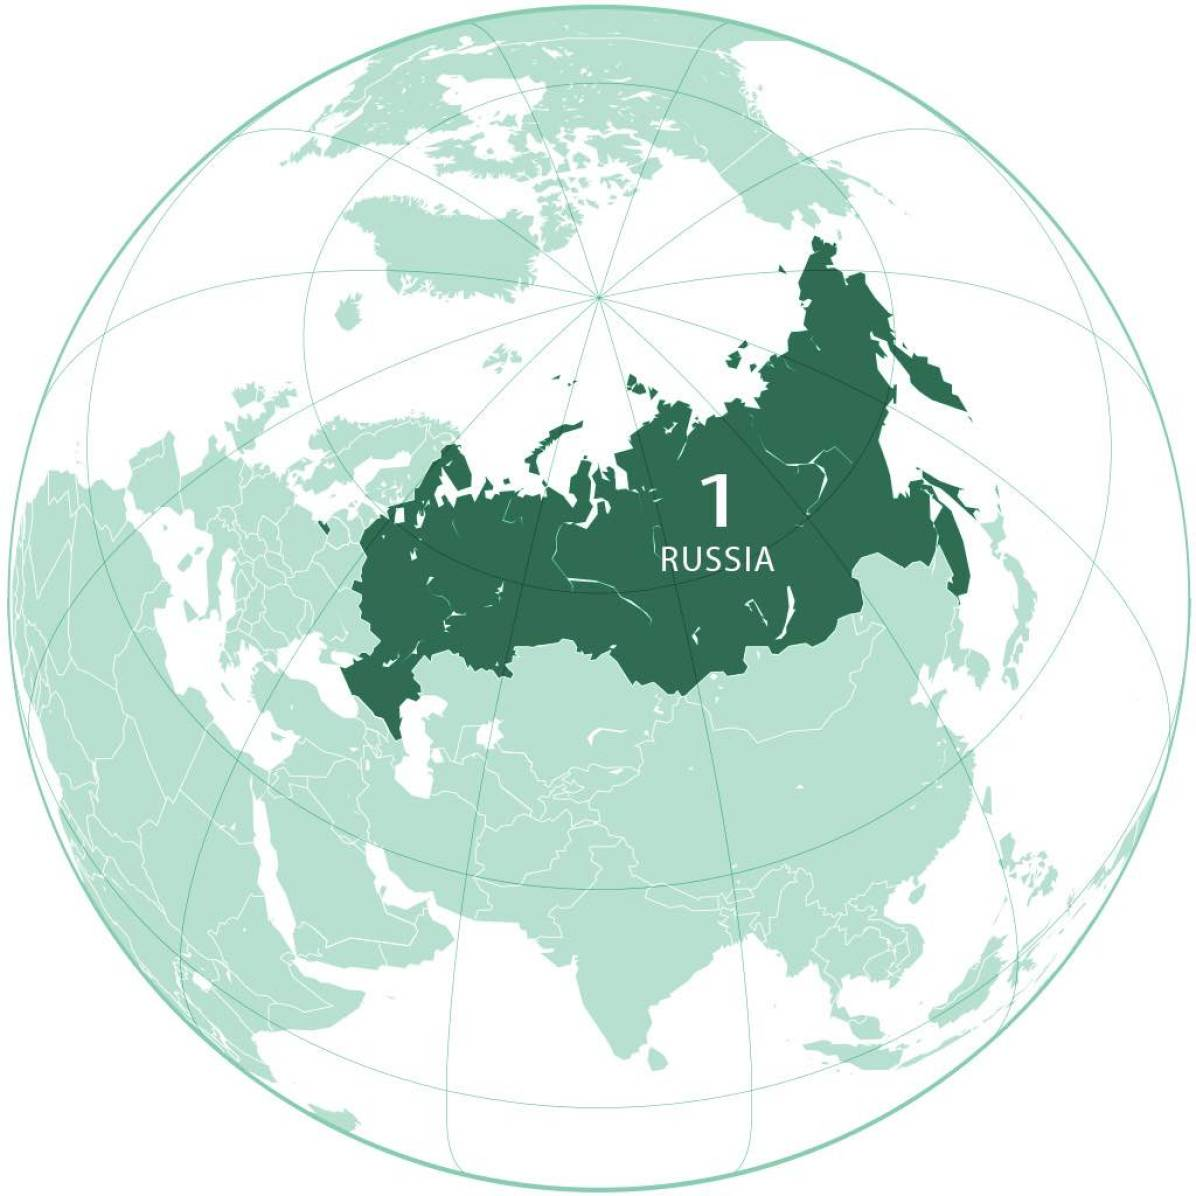 Russia World Map - by FutureTrillionaire/Wikimedia